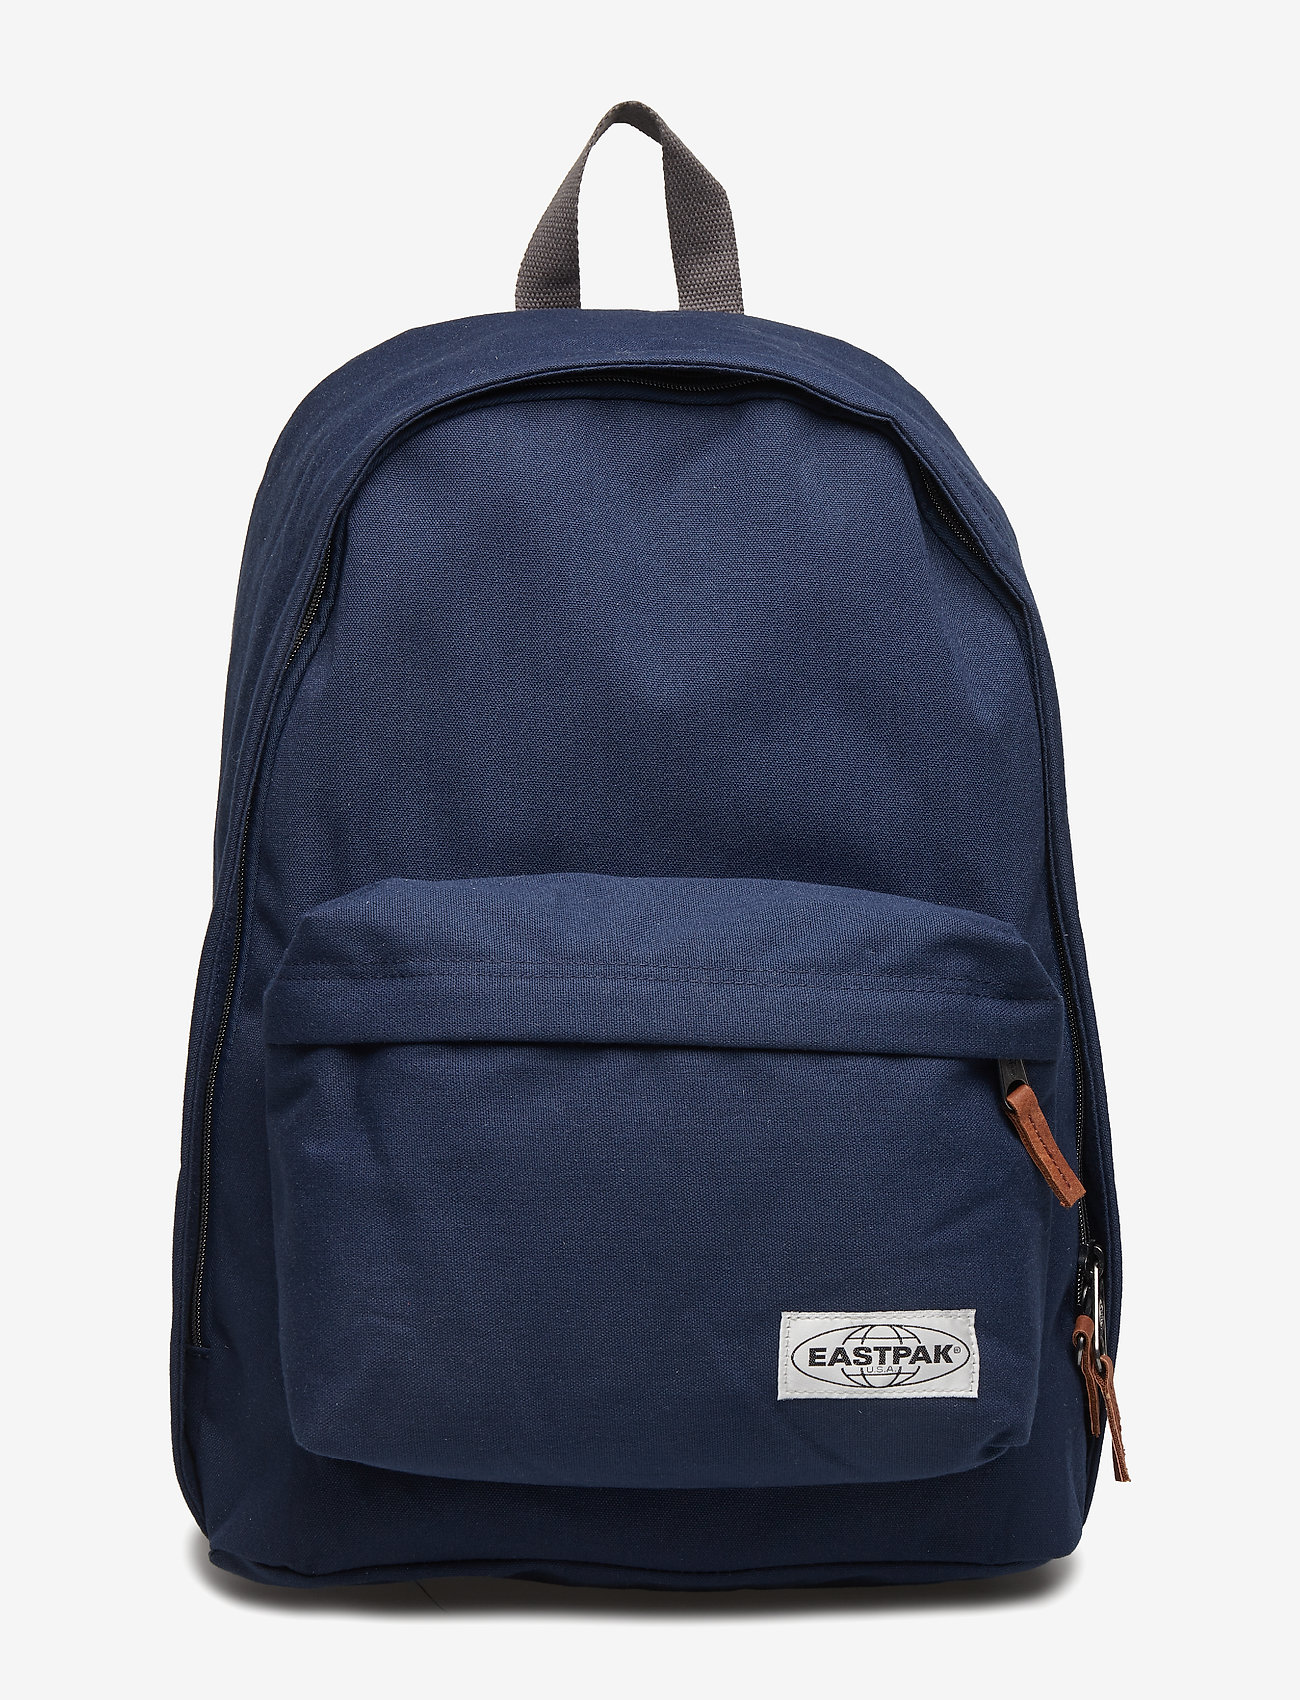 Eastpak - OUT OF OFFICE - backpacks - opgrade night